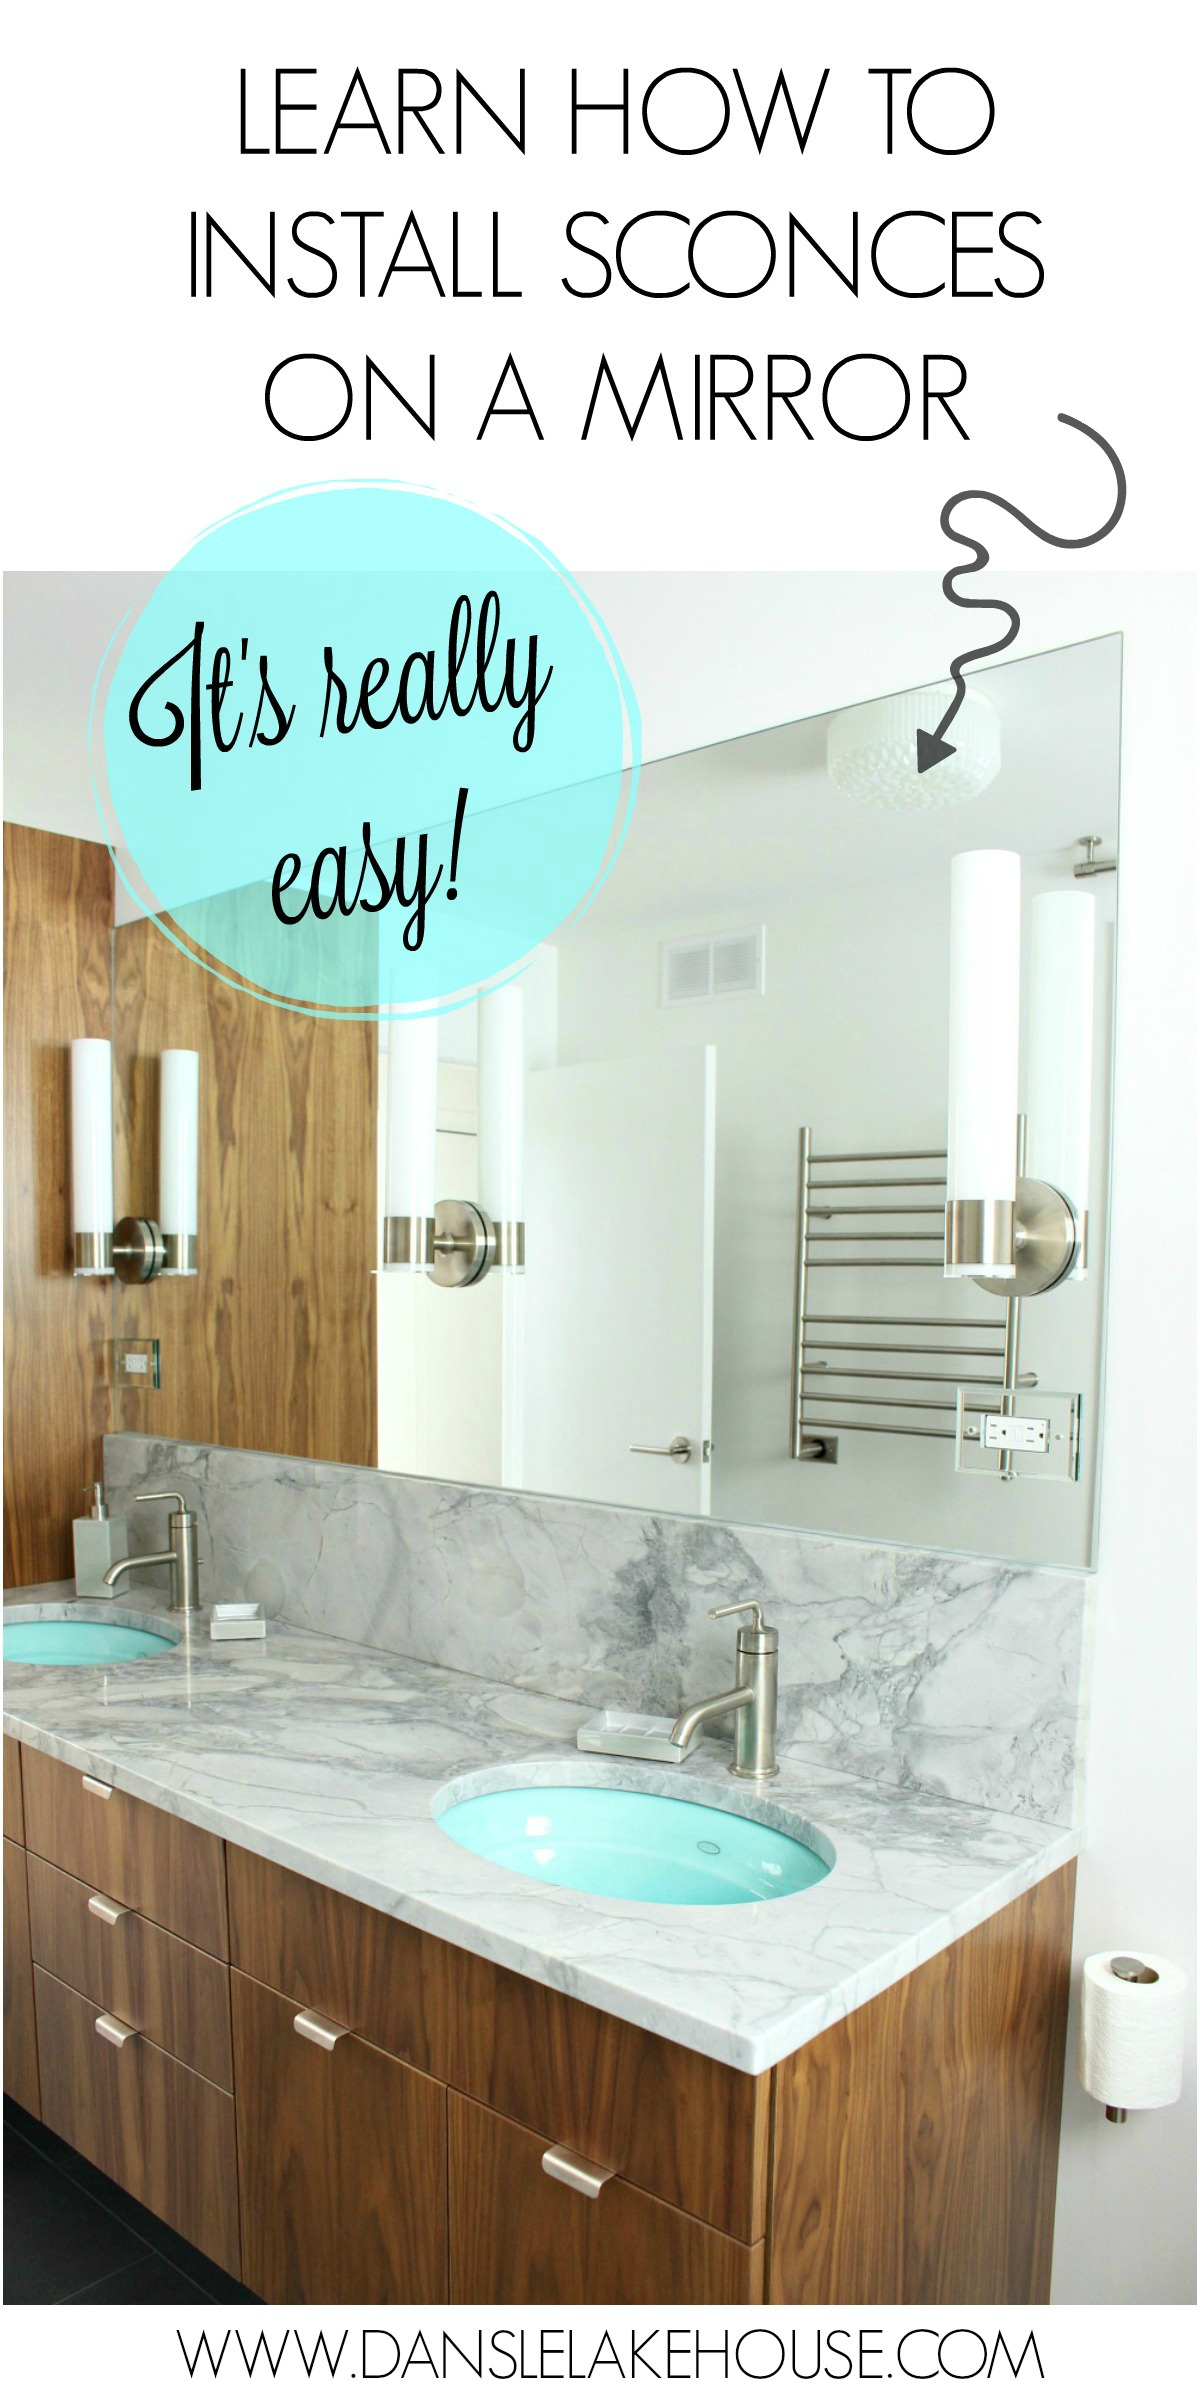 How to install sconces on a mirror - and see the rest of this modern bathroom renovation unfold | Dans le Lakehouse #bathroonreno #sconces #kohlerpurist